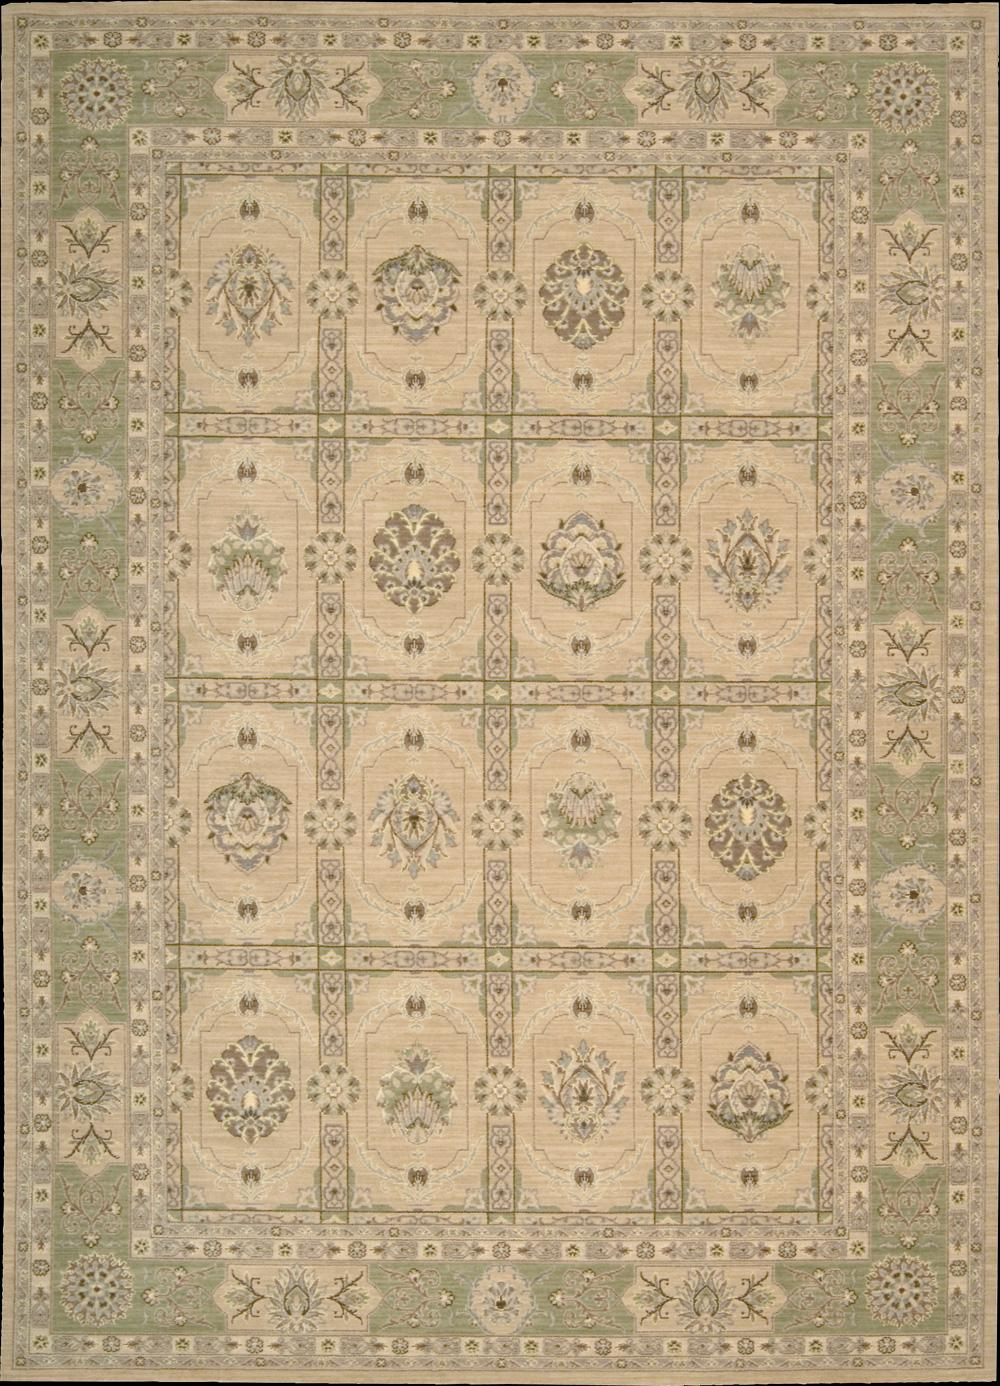 "Nourison Persian Empire Area Rug 3'6"" x 5'6"" - Item Number: 25356"